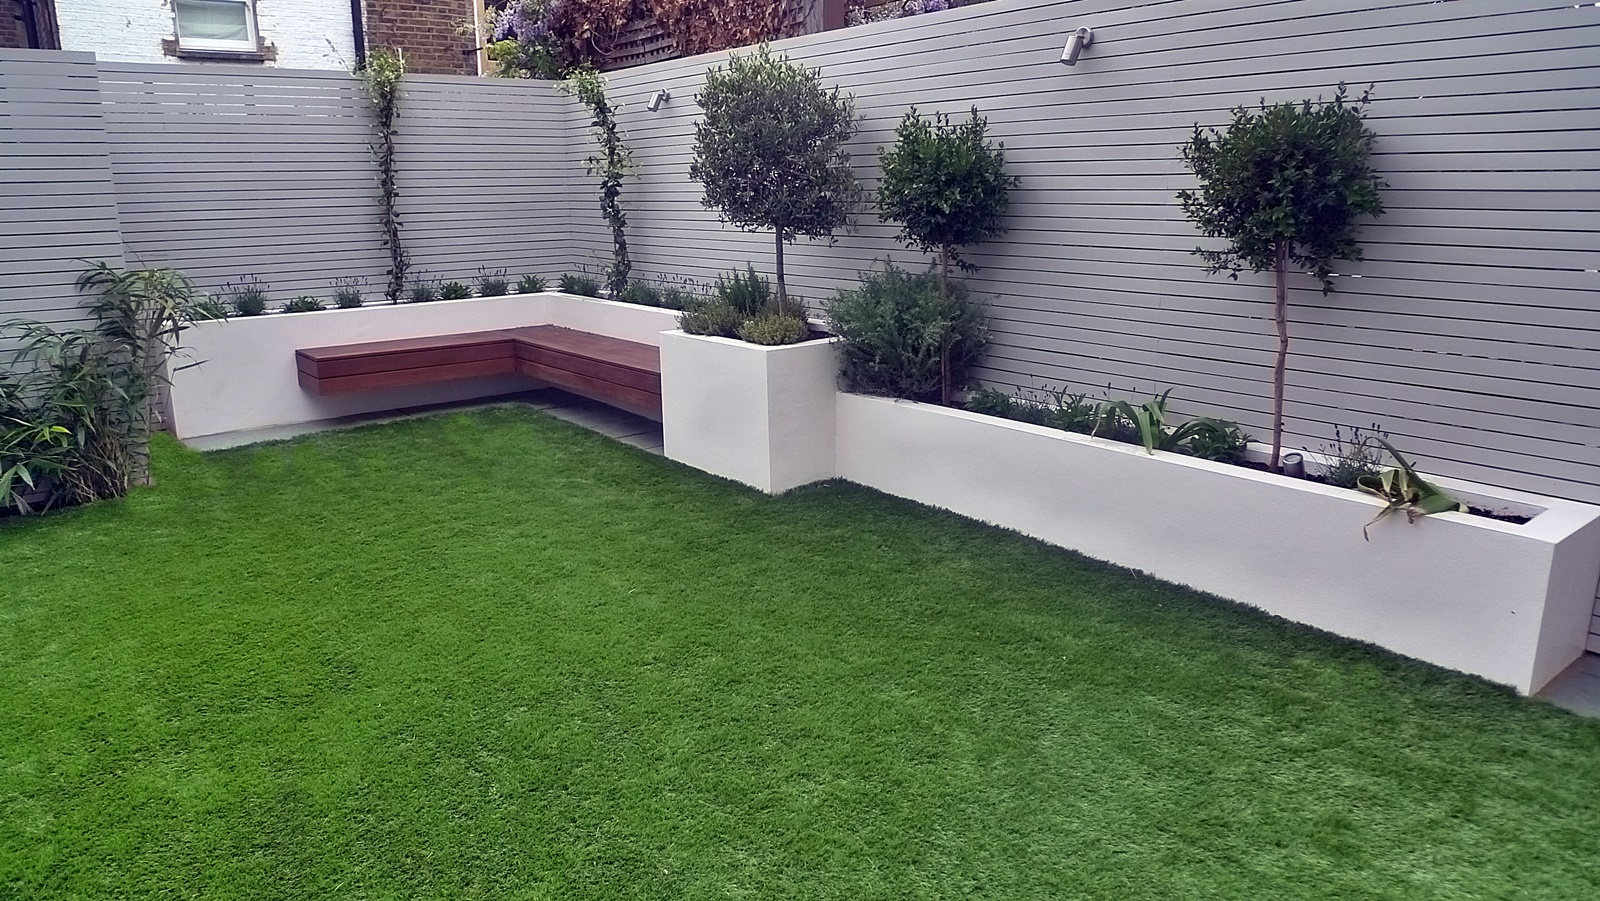 modern garden design raised beds slatted privacy screen trellis artificial grass raised beds bespoke garden storage shed tooting balham wandsworth new malden worcester park london